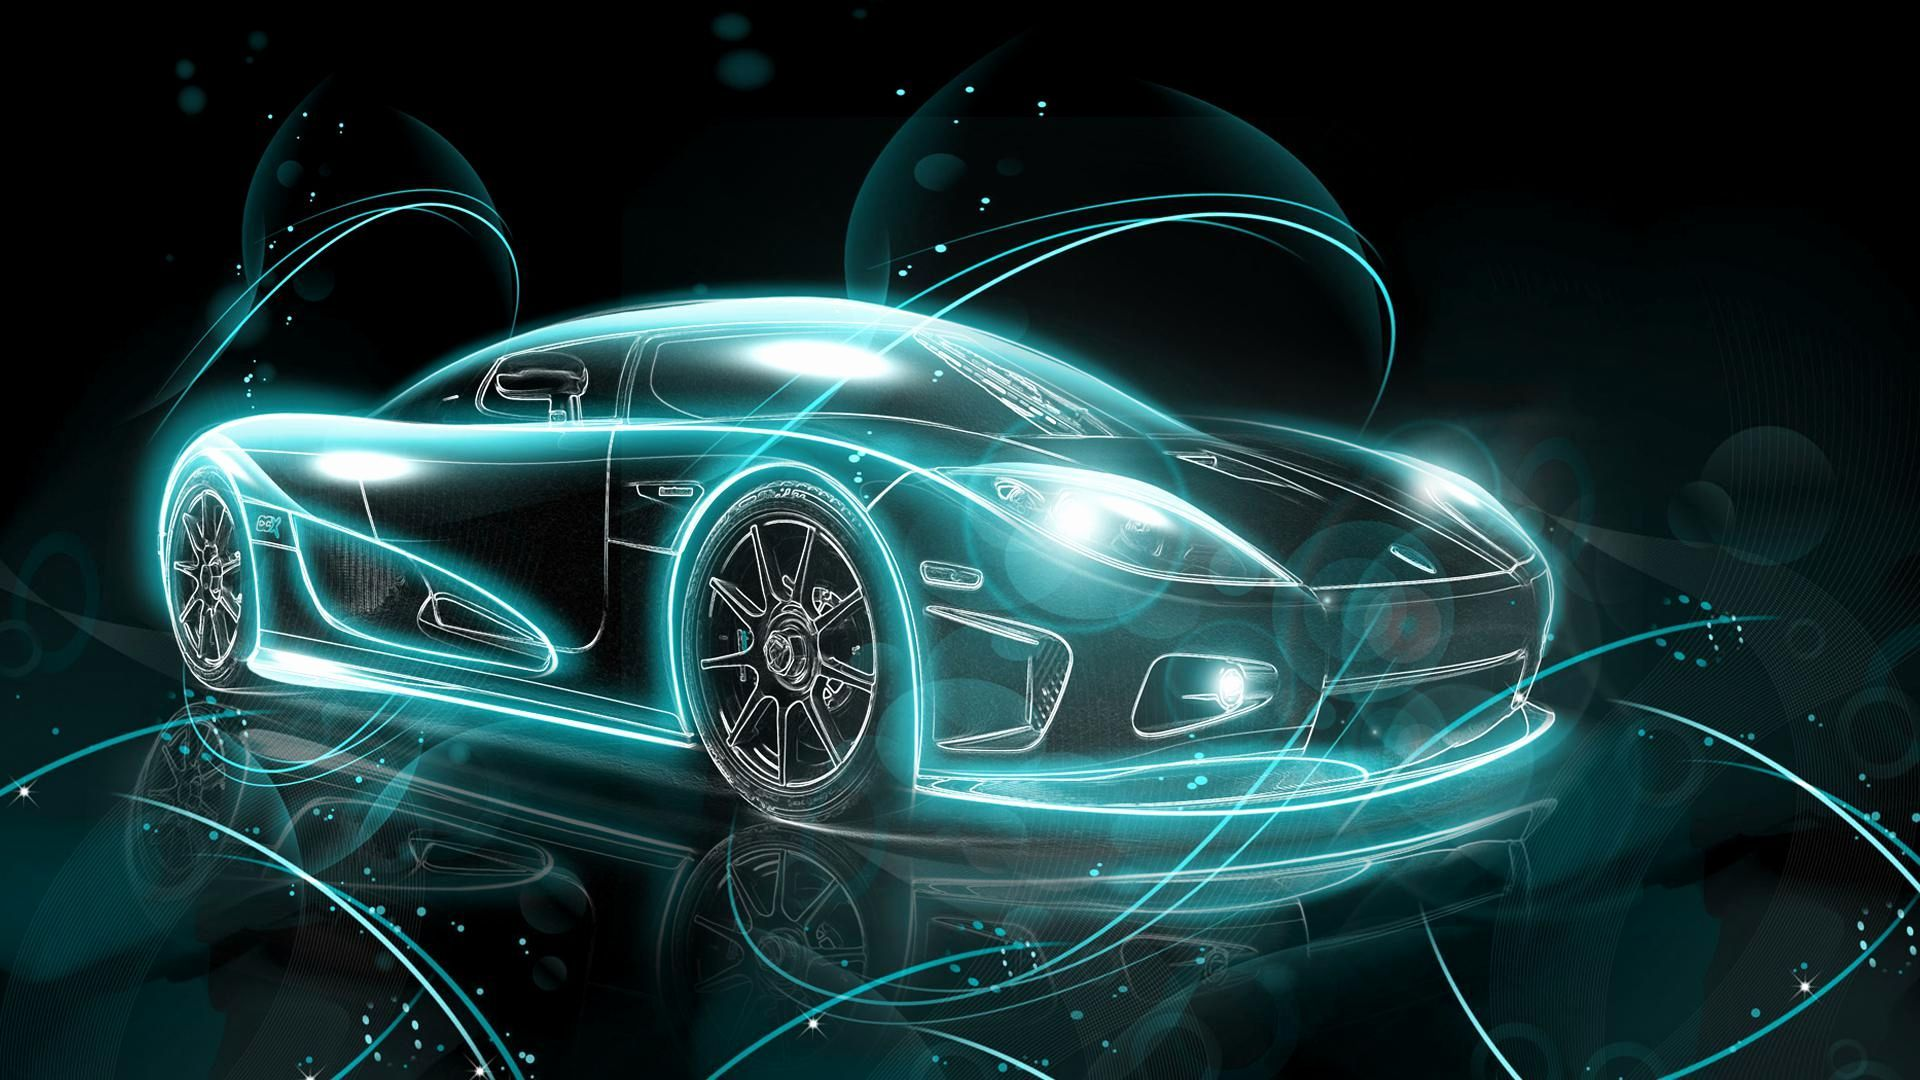 Cool Neon Cars Wallpapers Top Free Cool Neon Cars